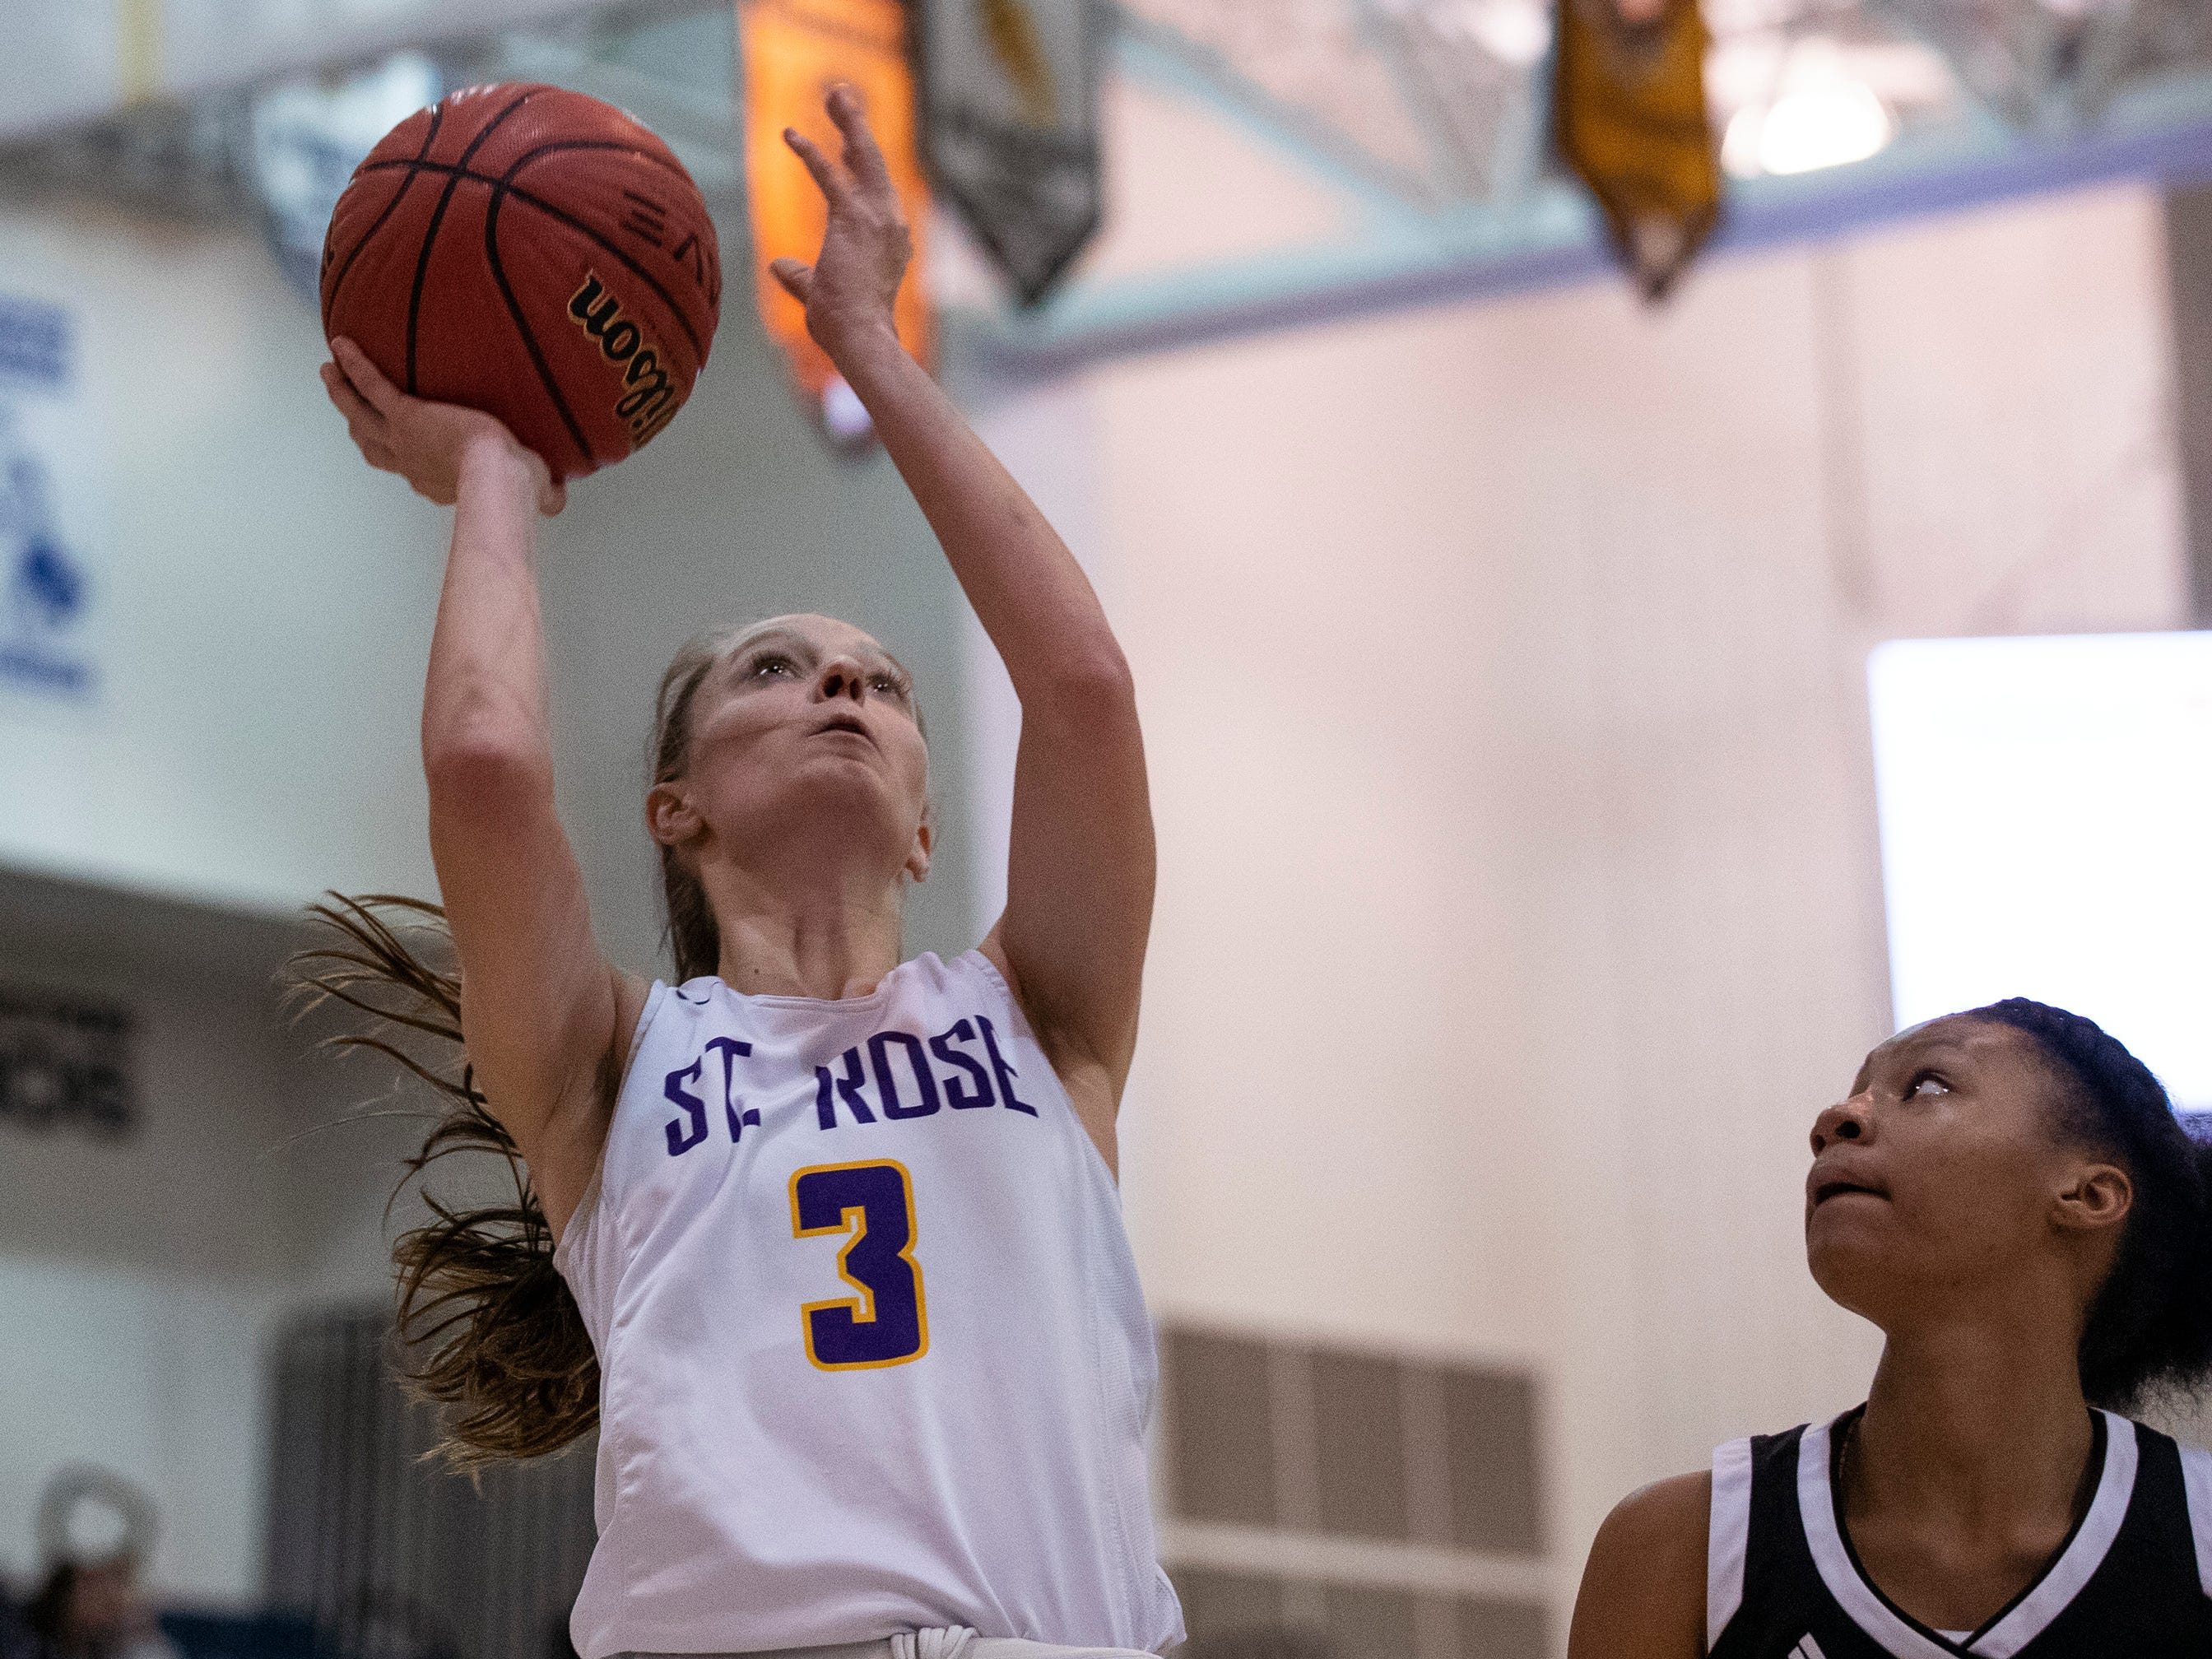 St. Rose's Lauren Lithgow goes up with a shot during first half action. St Rose Girls Basketball vs University in Tournament of Champions opening round game in Toms River on March 12, 2019